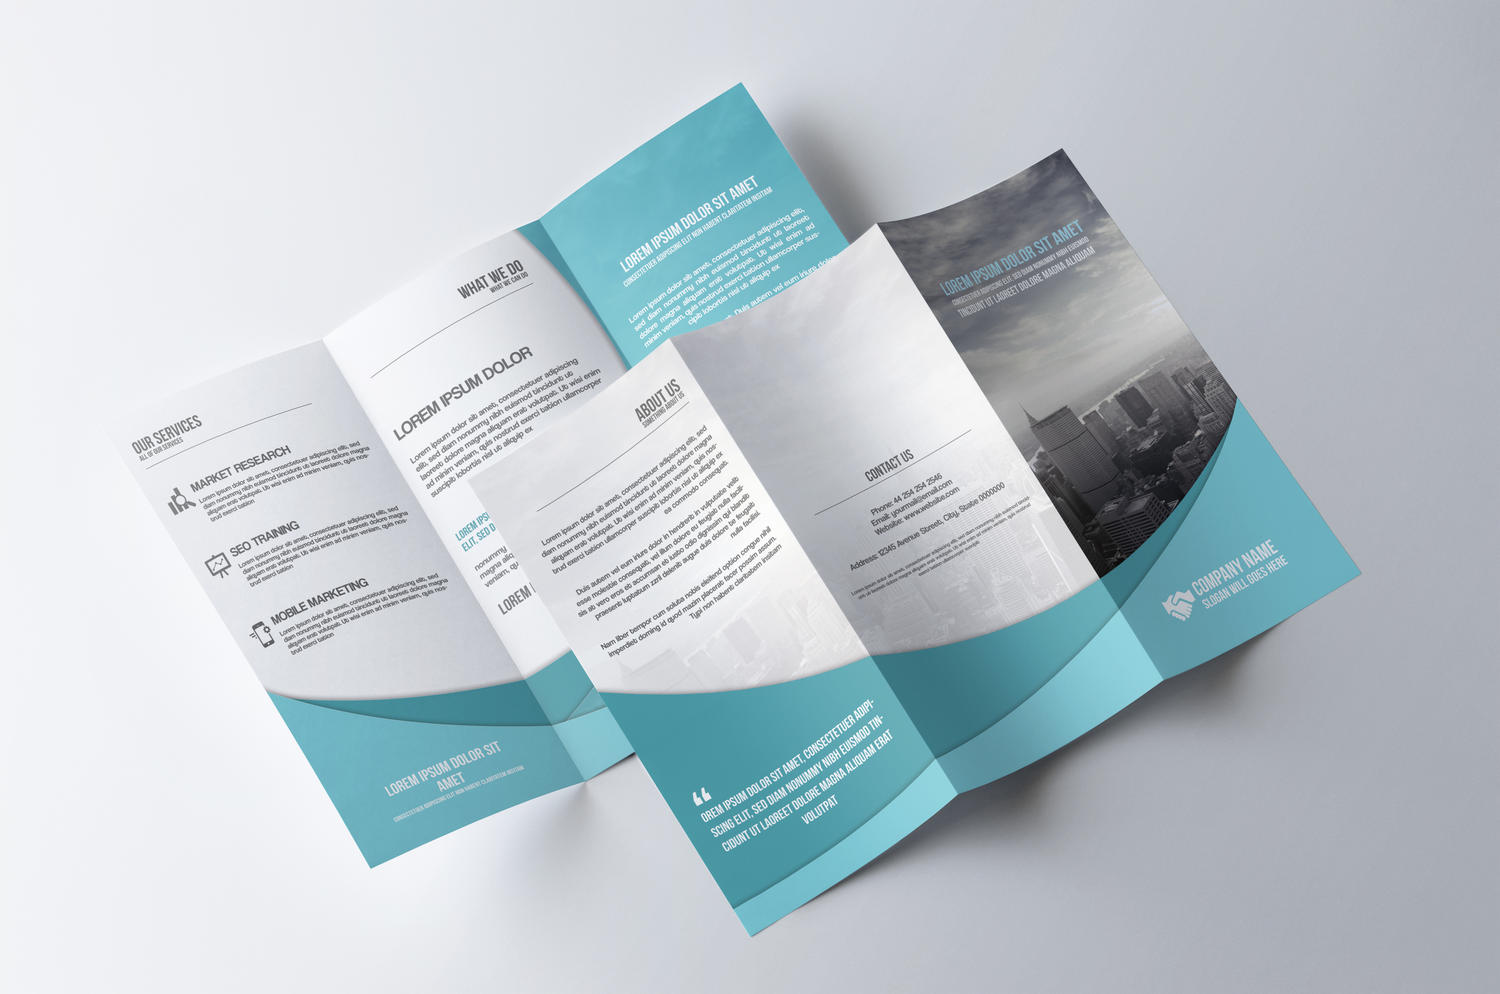 designing brochures - professional tri fold brochure design by creativeshop7 on